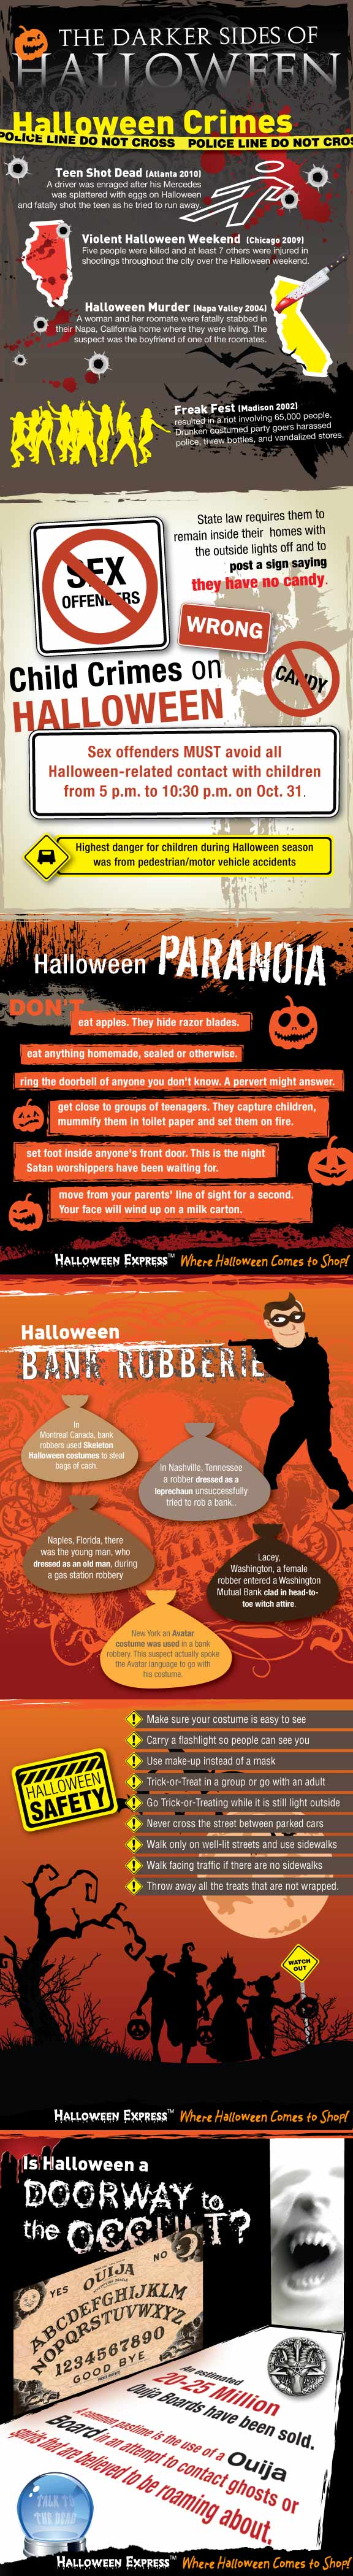 INFOGRAPHIC: The Darker Sides of Halloween